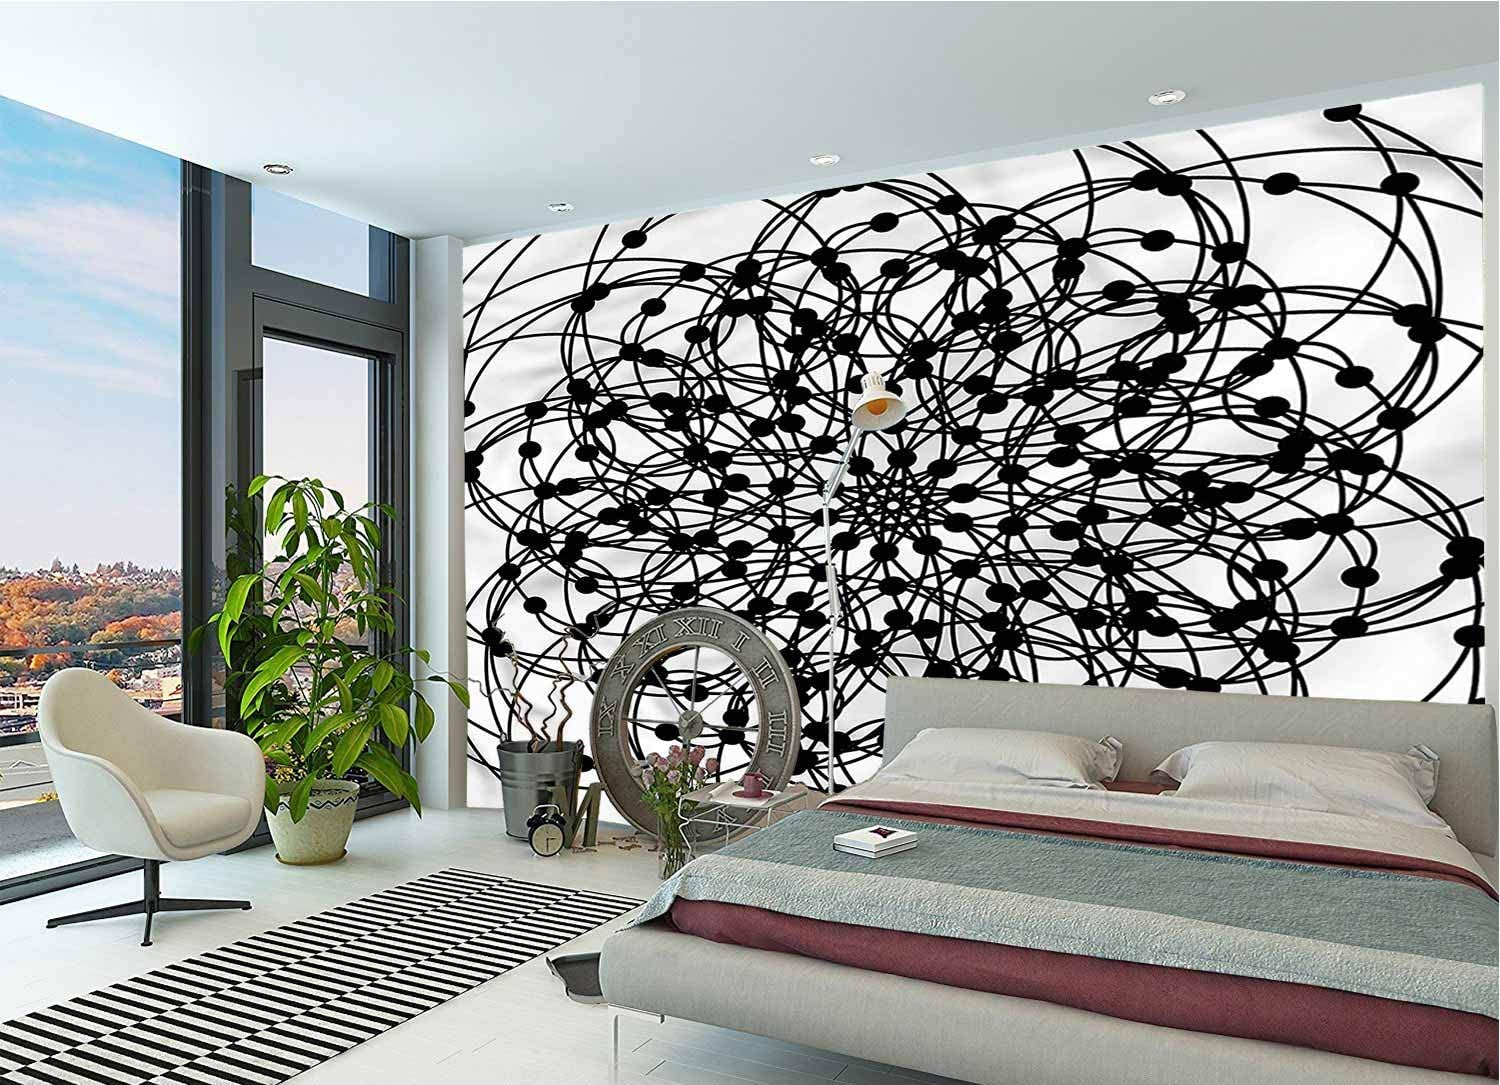 LCGGDB 3D Print Wall Stickers Murals,Ancient Sacred Geometry Paperhanging Wallpaper for Office Livingroom Girls Bedroom Family Wall Decals-144x100 Inch